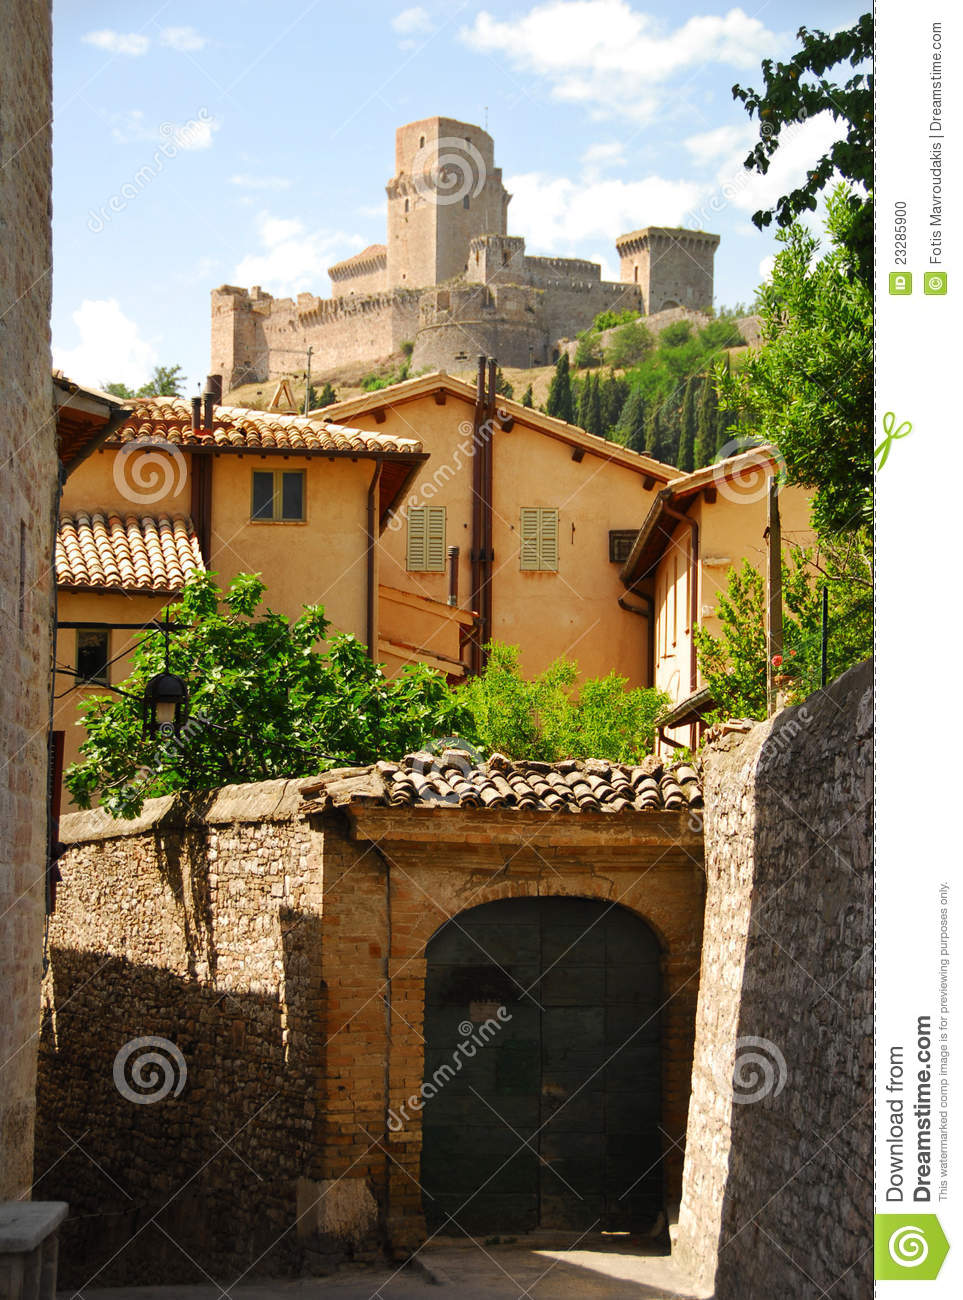 Alley way in Assisi